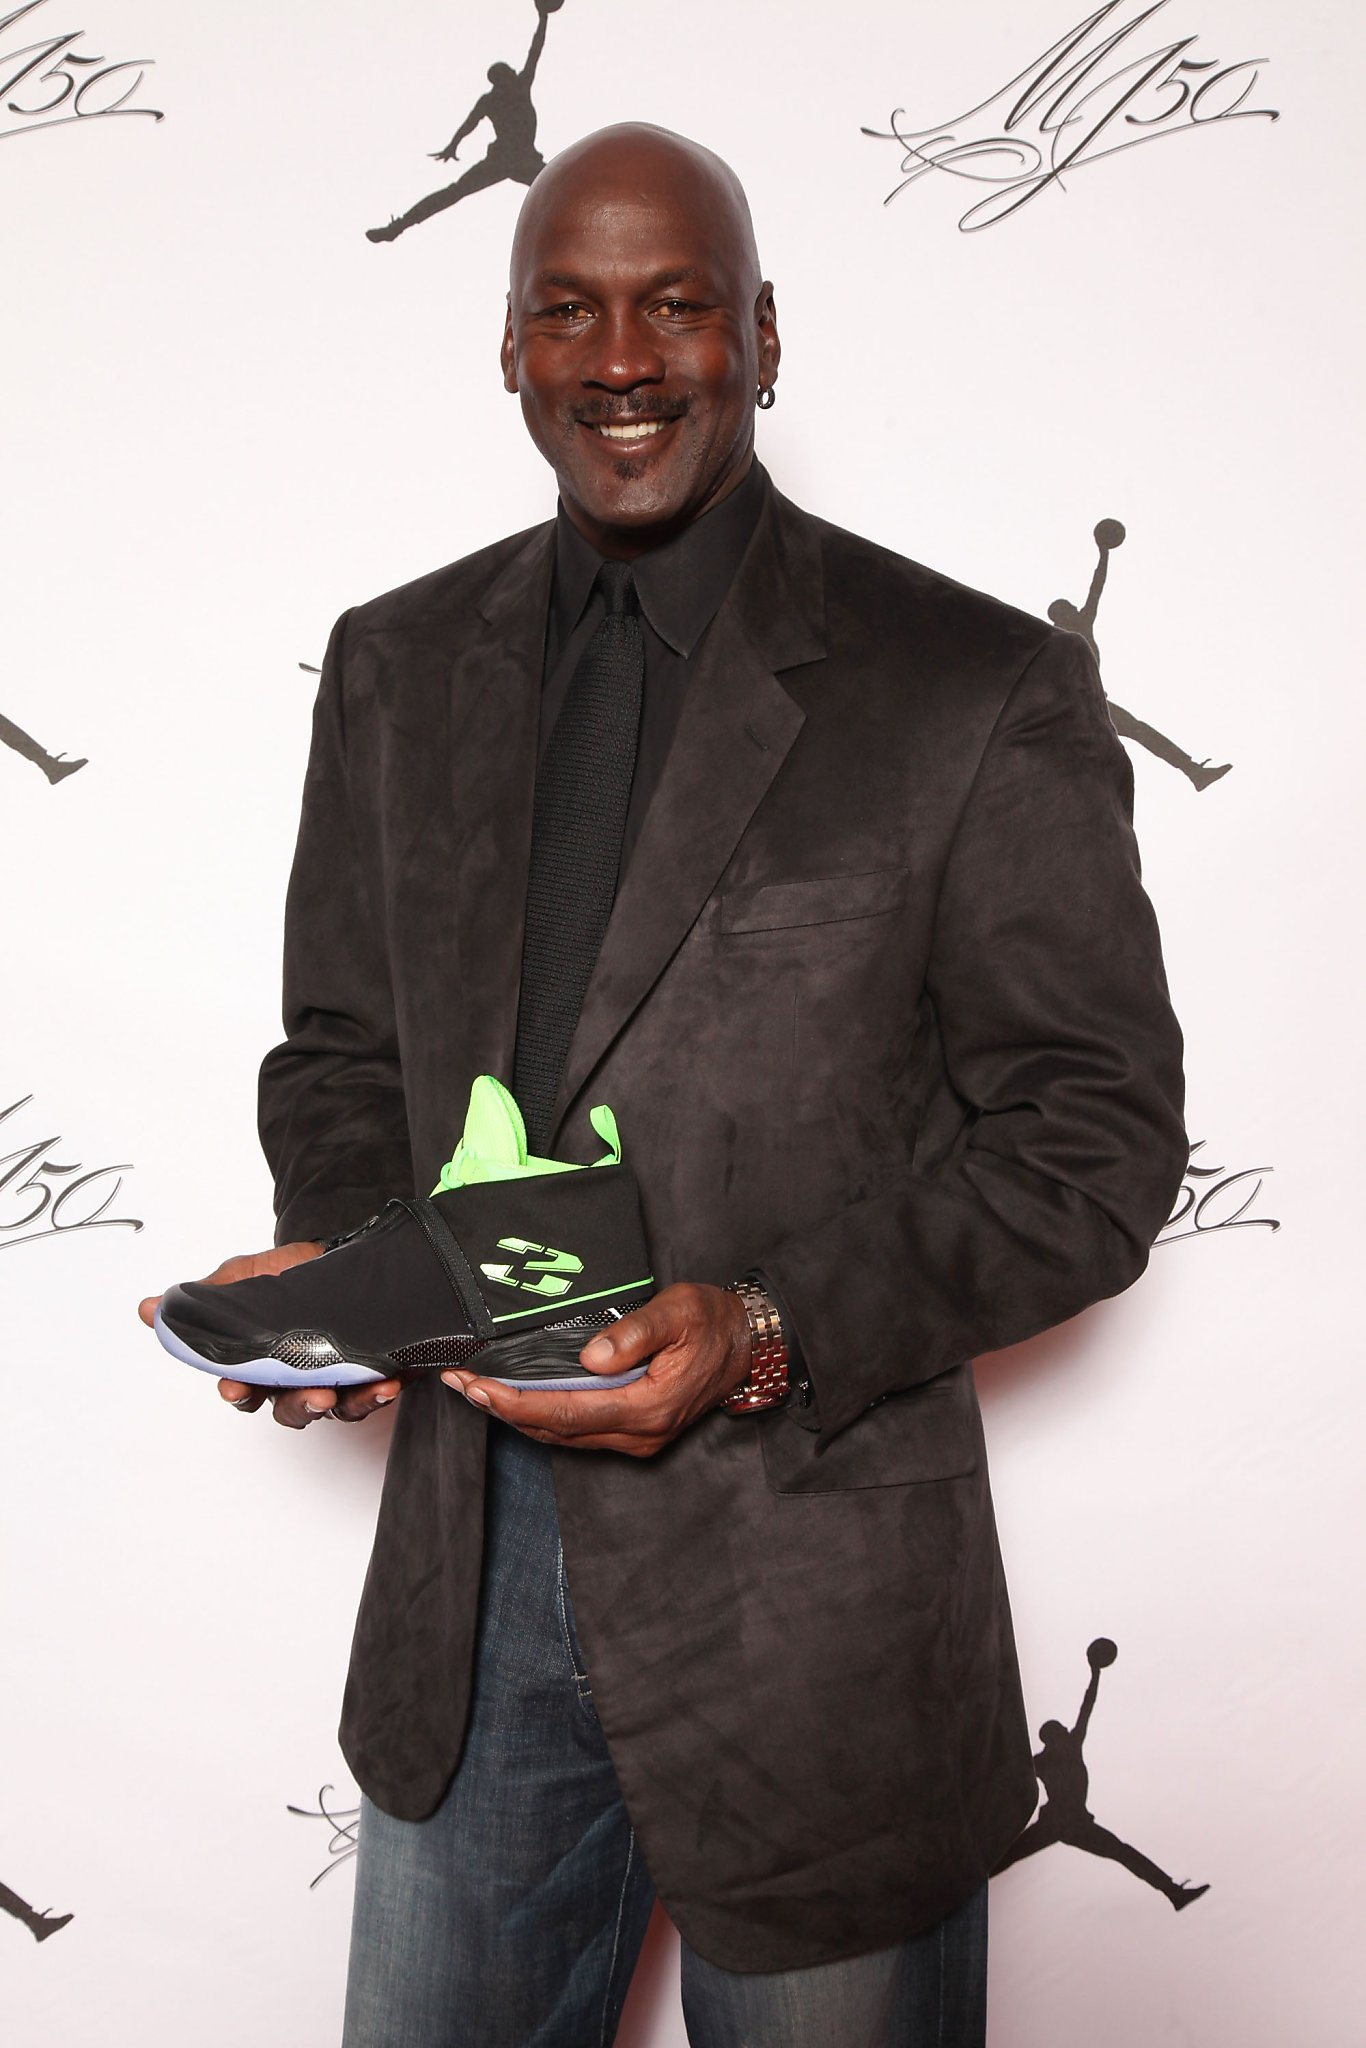 Michael jordan persuasive speech